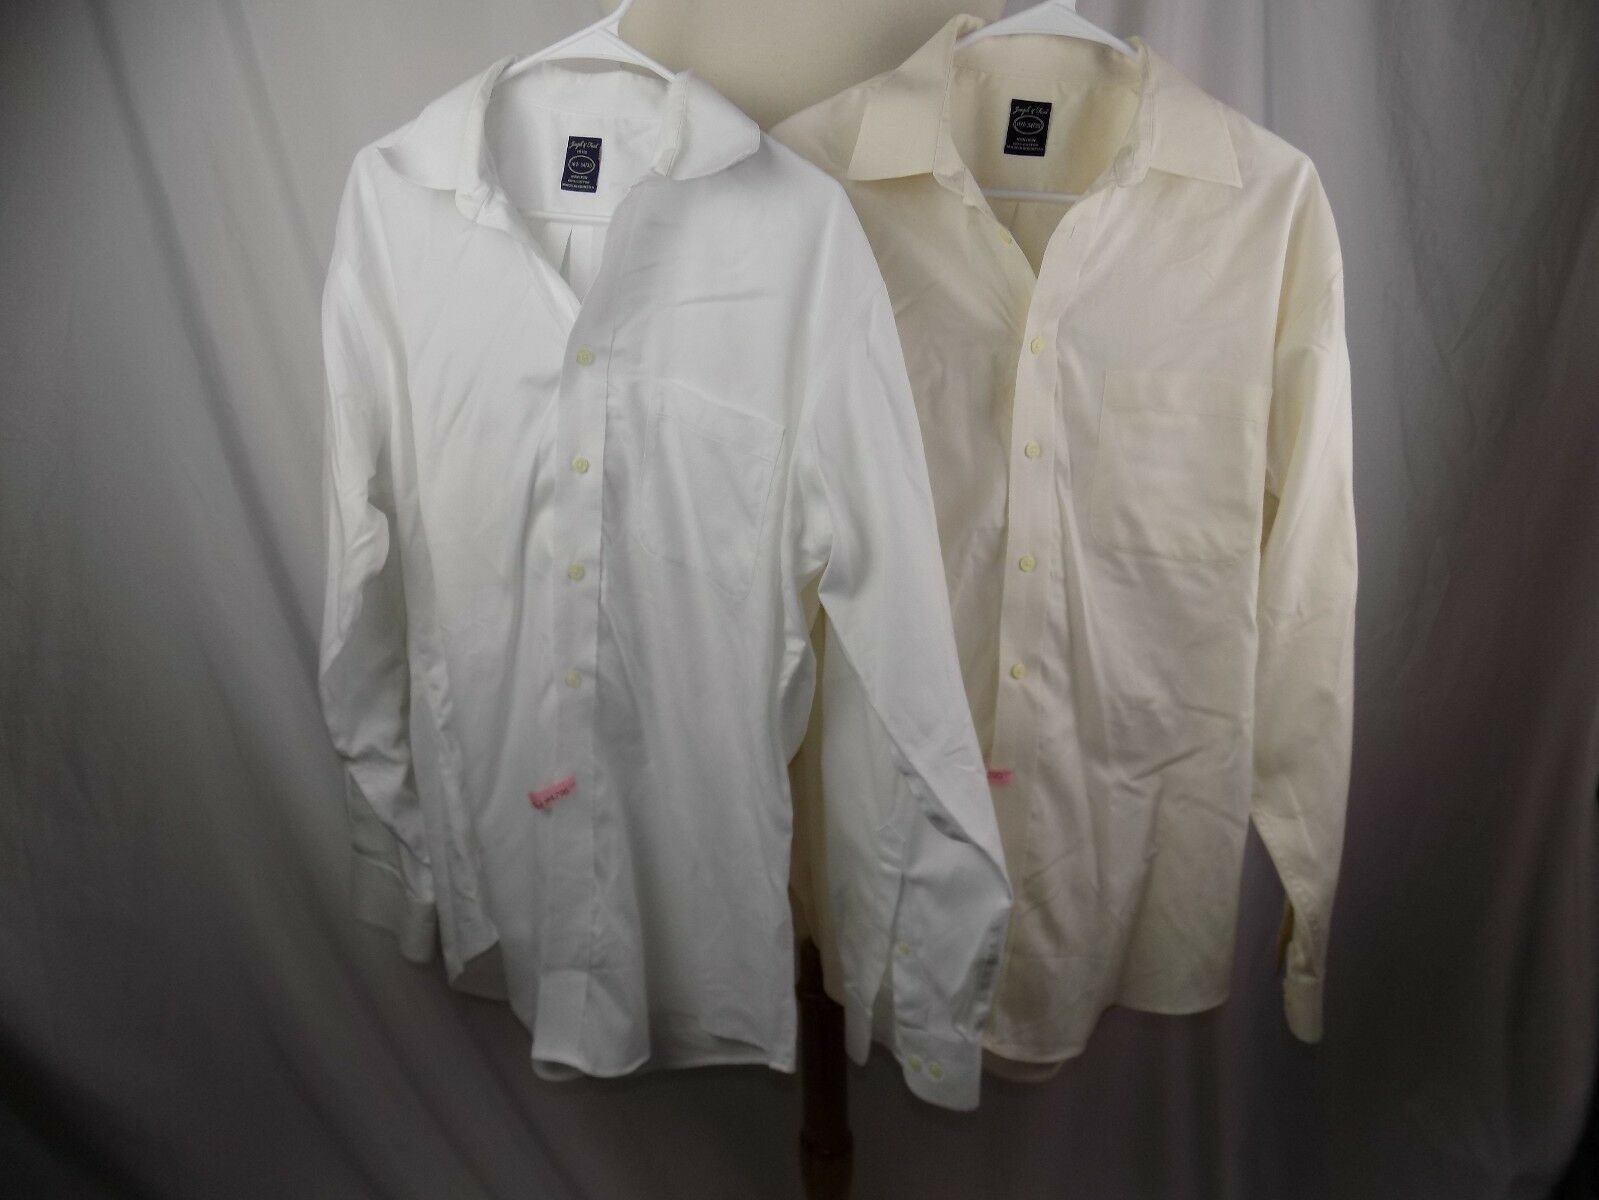 Lot of 2 Joseph & Feiss L S Button Dress Shirt 16 1 2 34 35 Fitted White & Cream